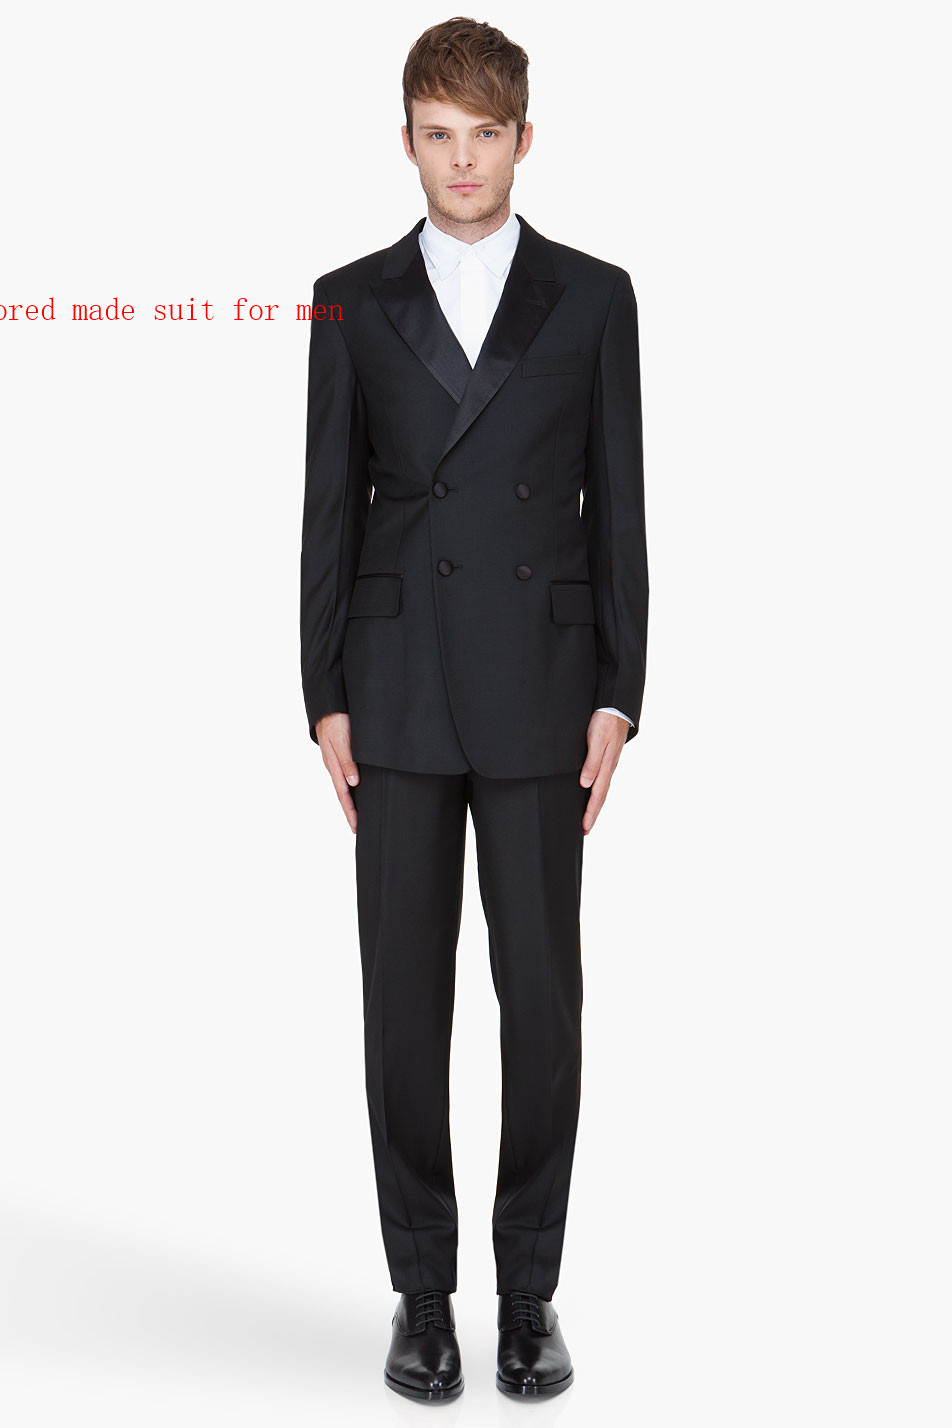 Popular Skinny Black Suit-Buy Cheap Skinny Black Suit lots from